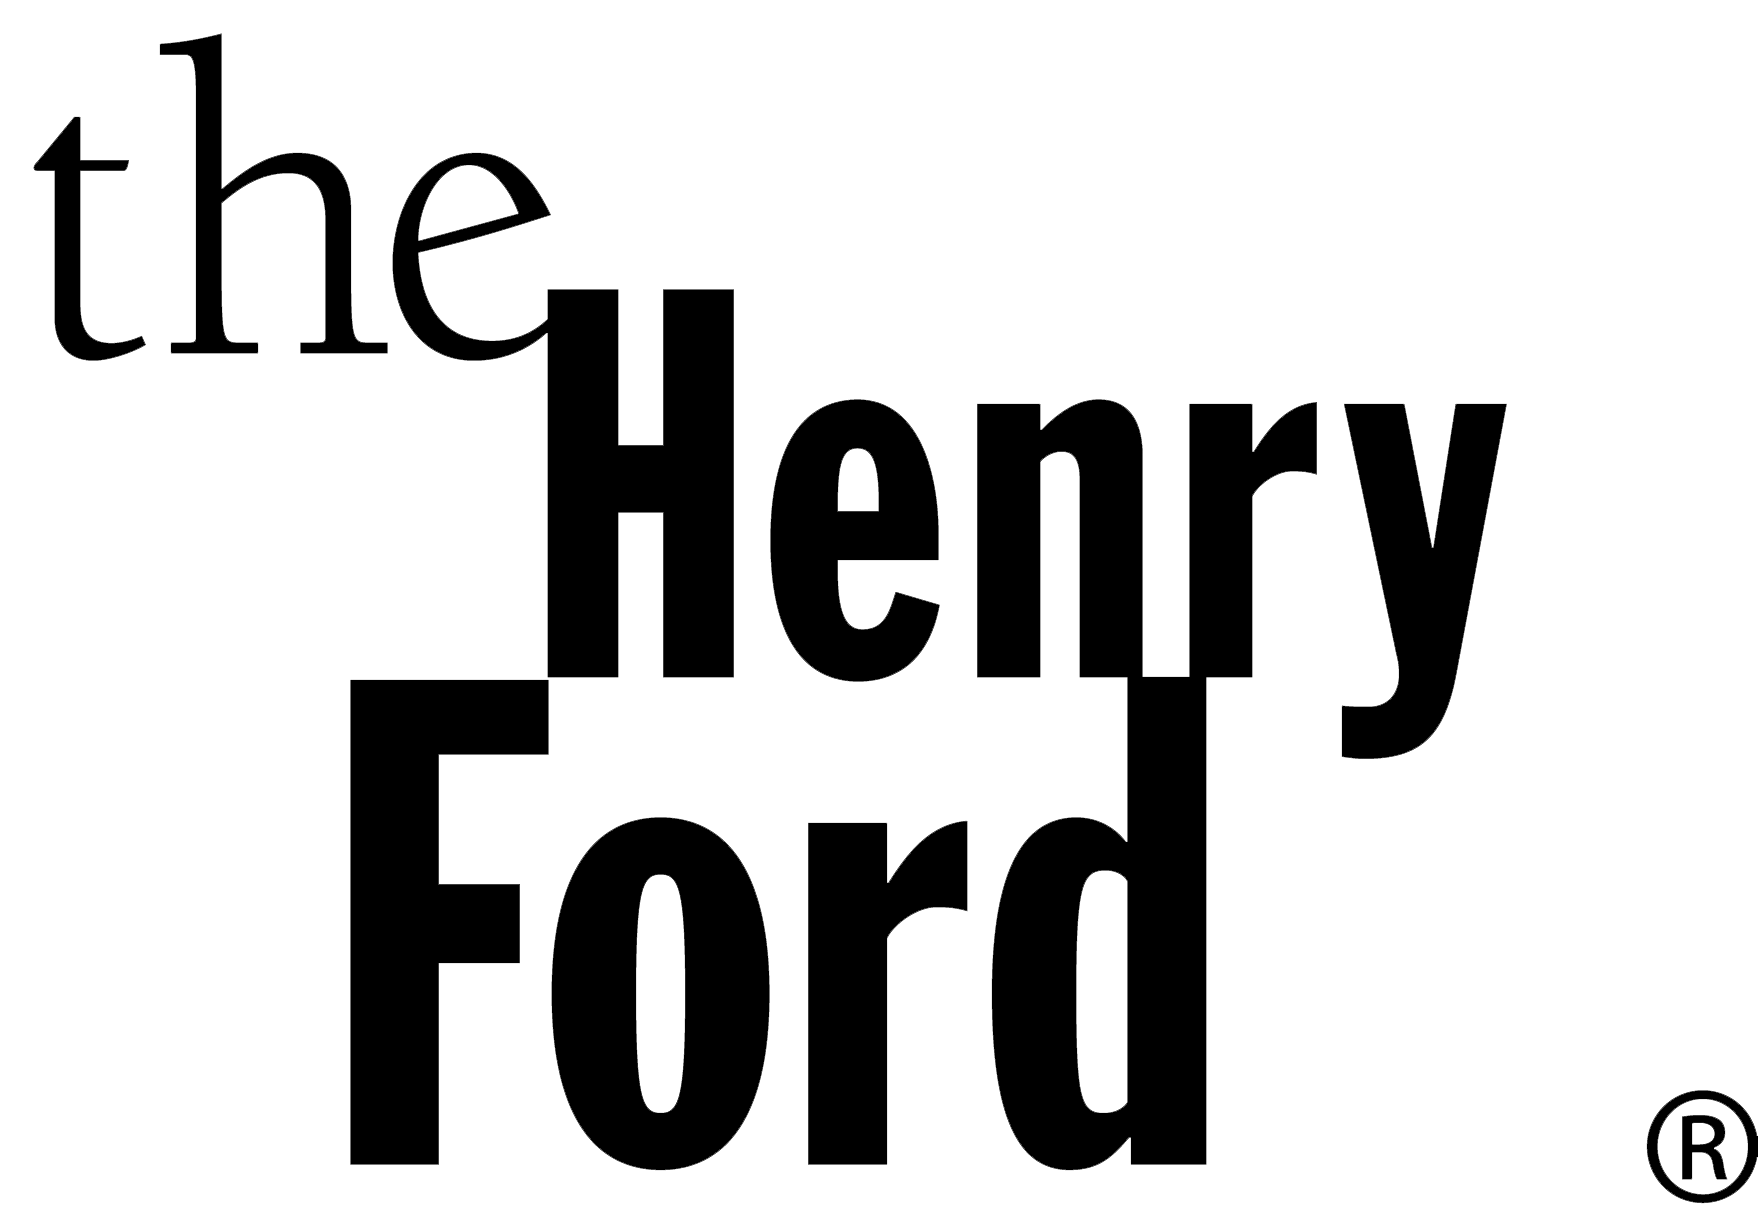 HenryFord BlockLogo_Black_transparent